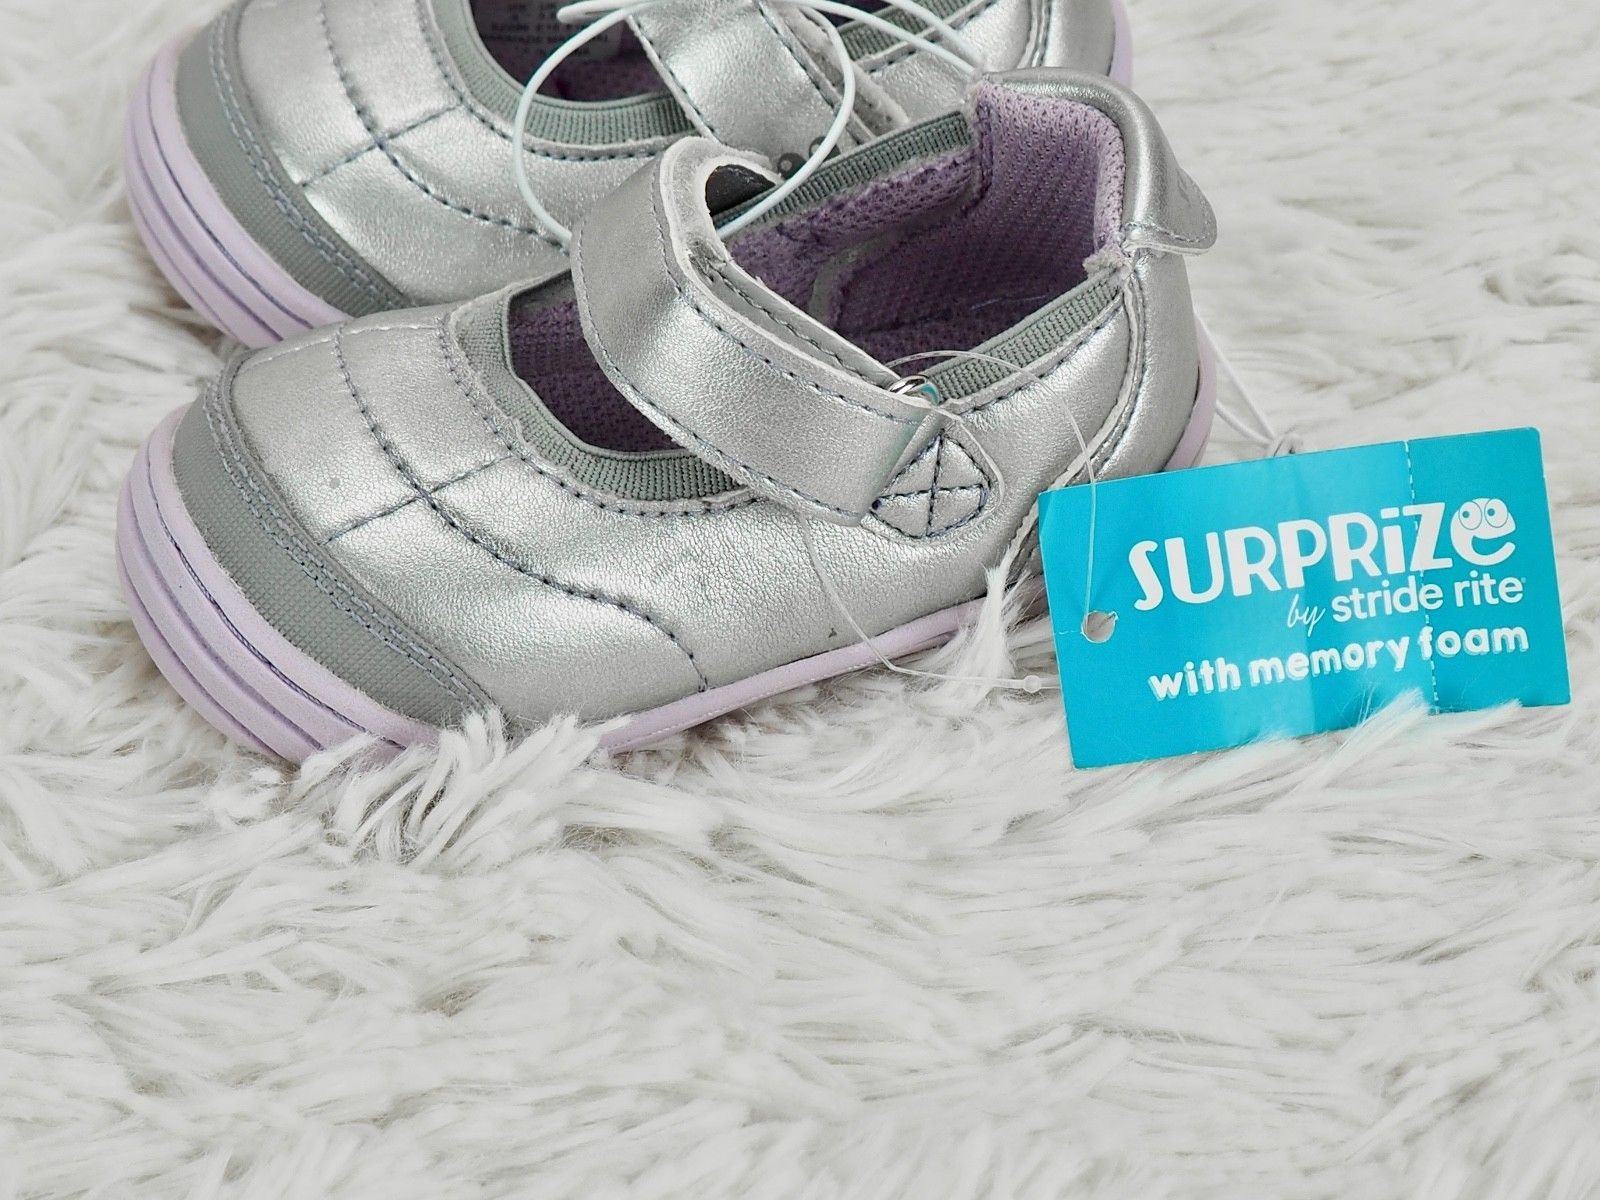 3dc2d28f9d2e 57. 57. Previous. STRIDE RITE SURPRIZE SNEAKERS  ASHBY  MARY JANE SHOES  Silver Metallic GIRLS 4